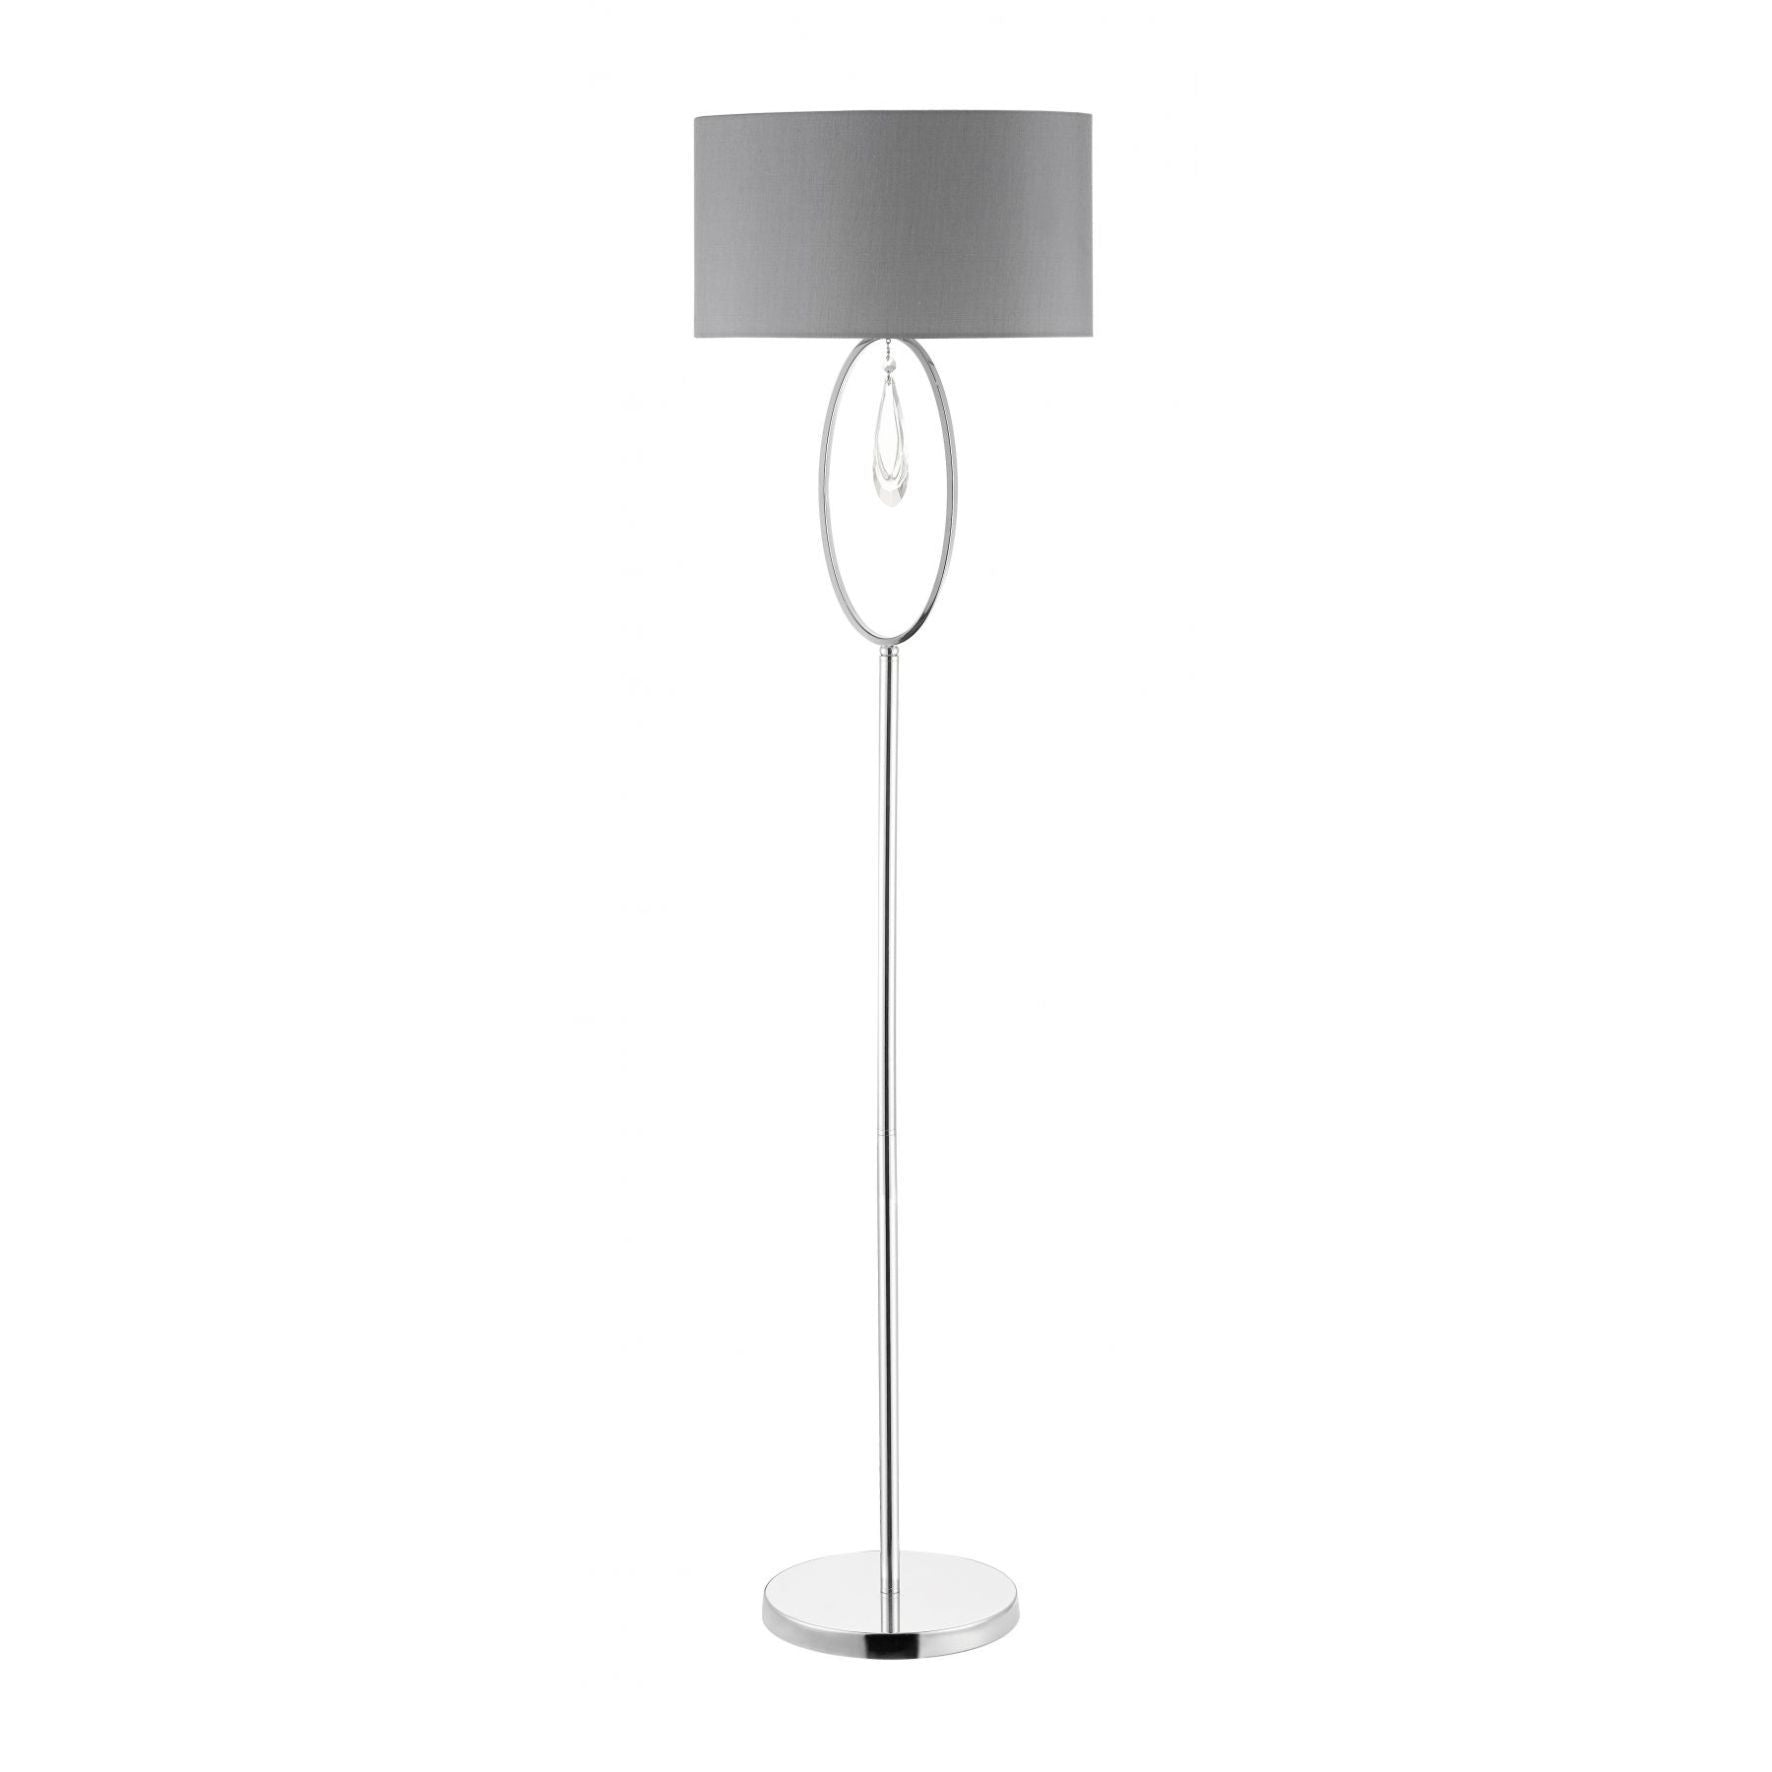 Magnalux Markle Polished Chrome And Crystal Floor Lamp C/W Oval Shade